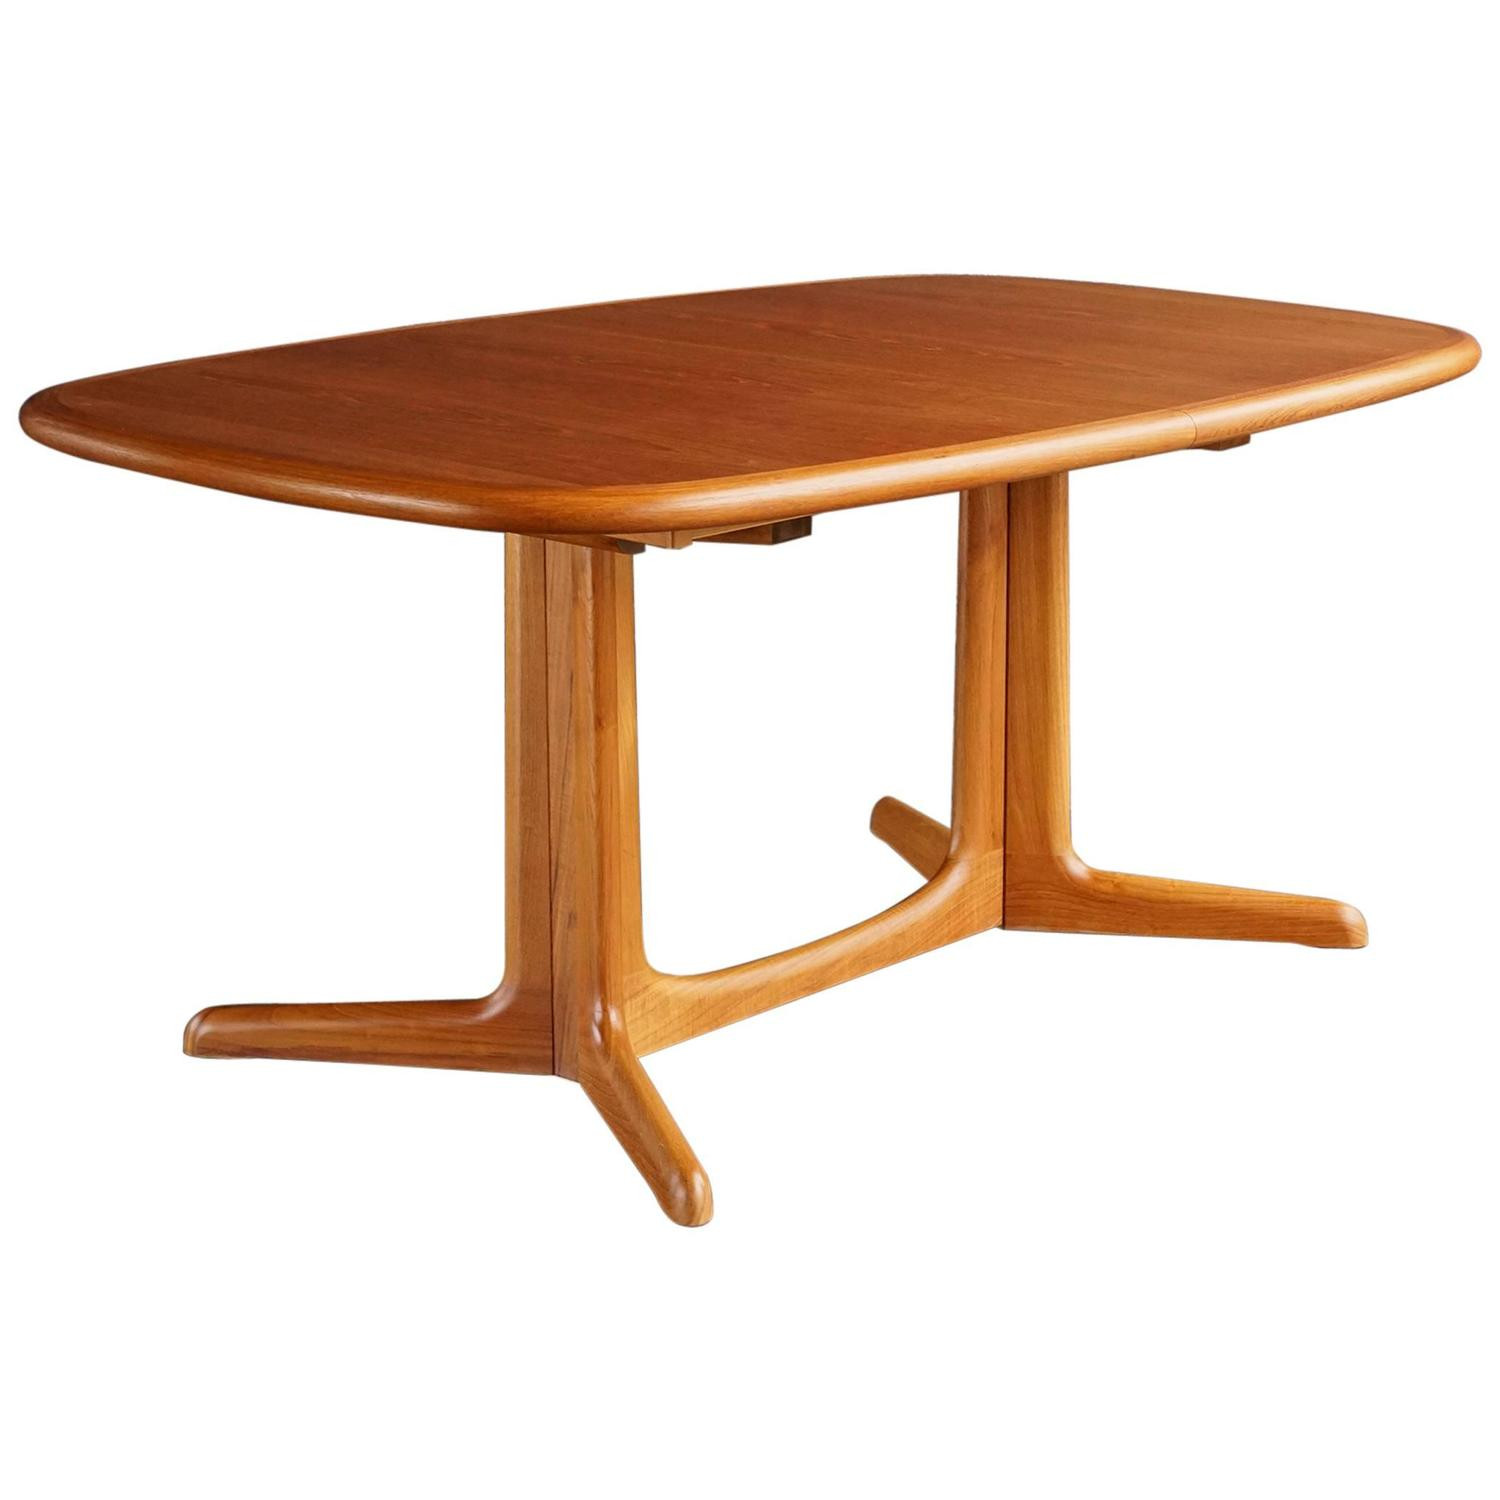 Best ideas about Extension Dining Table . Save or Pin Danish Extension Dining Table at 1stdibs Now.